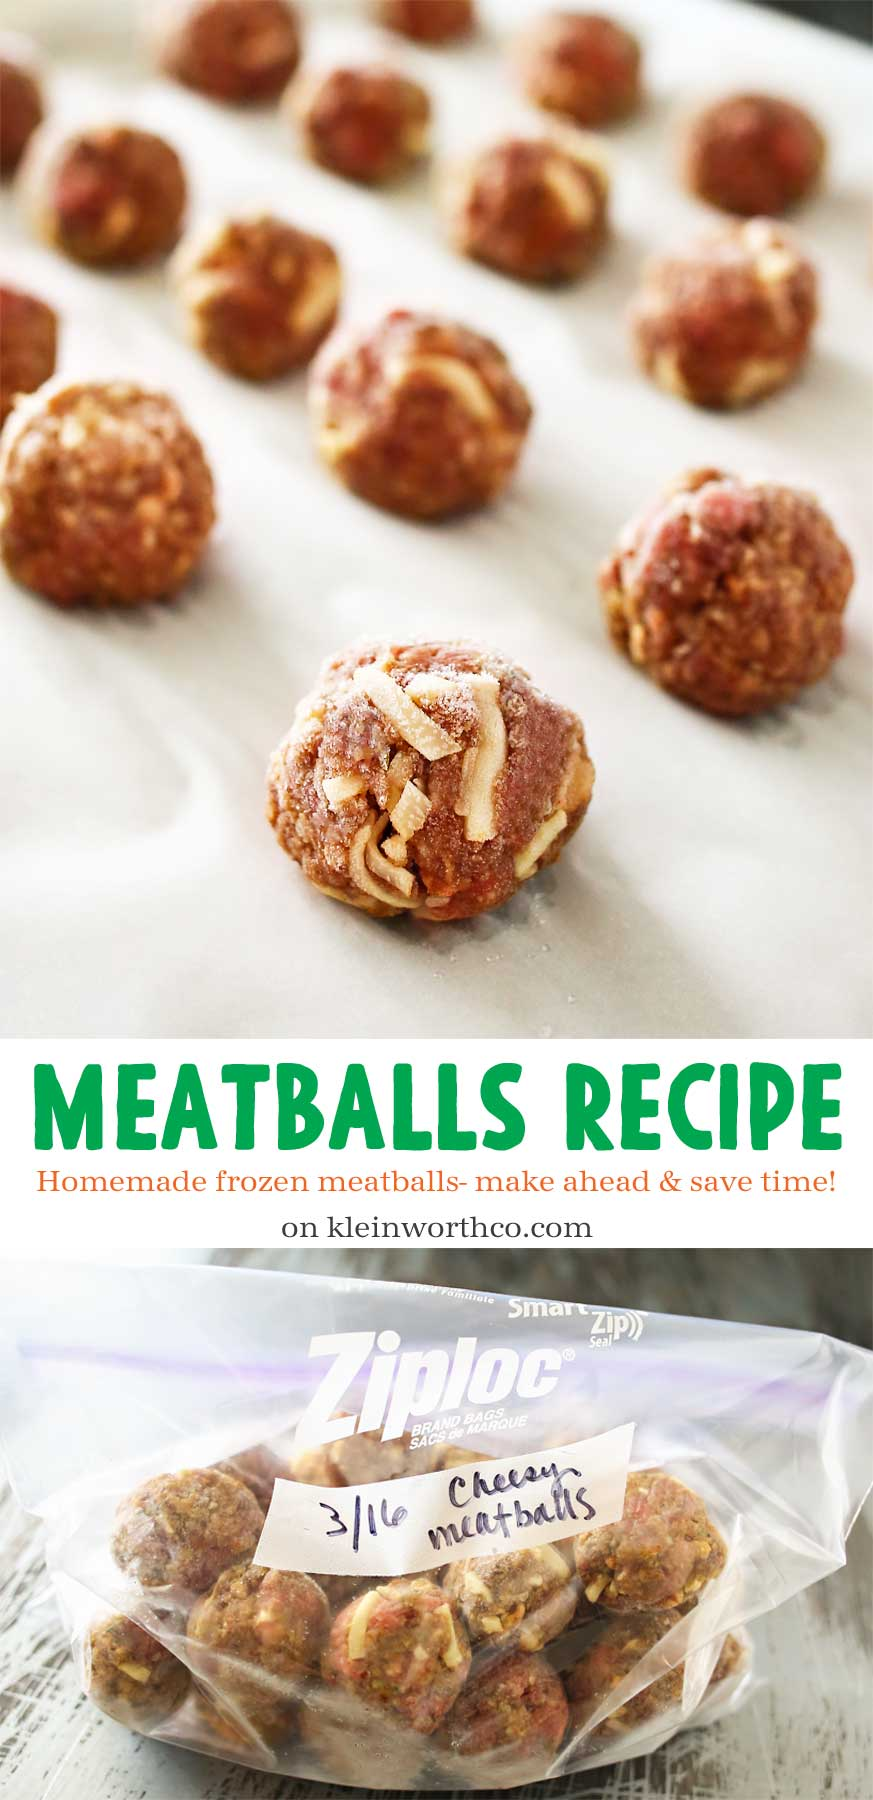 Don't buy pre-packaged meatballs when this homemade Meatballs Recipe is so easy! Make ahead & store in the freezer for future easy family dinners. They take just a couple minutes to make & are a great addition to dinners, game day & more!